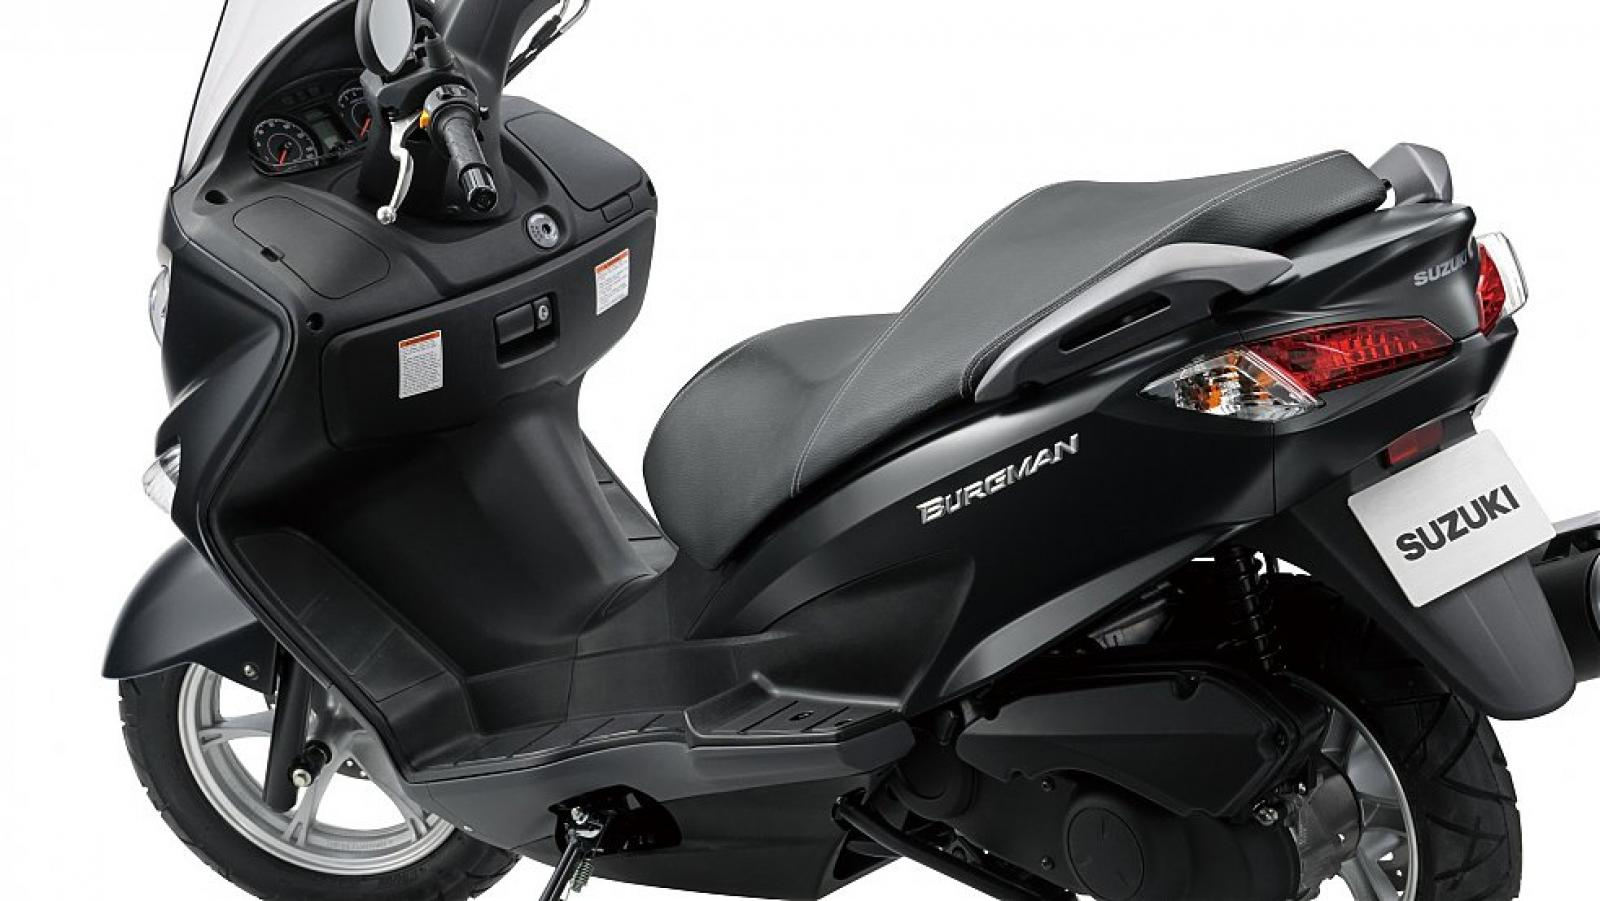 2014 suzuki burgman 200 moto zombdrive com. Black Bedroom Furniture Sets. Home Design Ideas